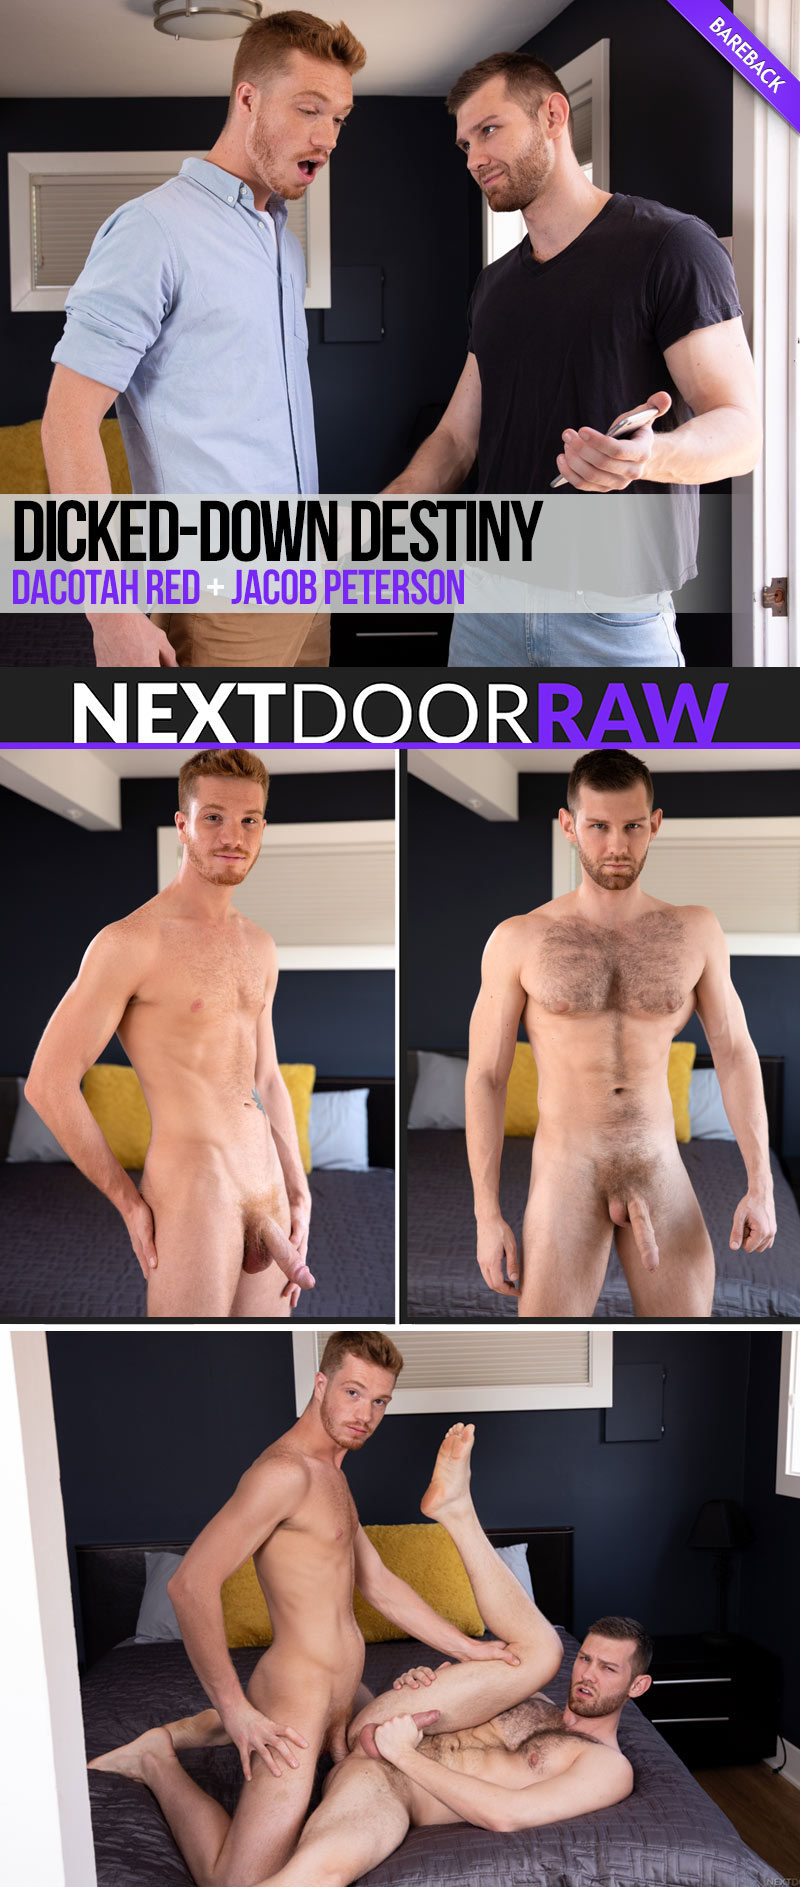 Dicked-Down Destiny (Dacotah Red Fucks Jacob Peterson) (Bareback) at NextDoorRAW!